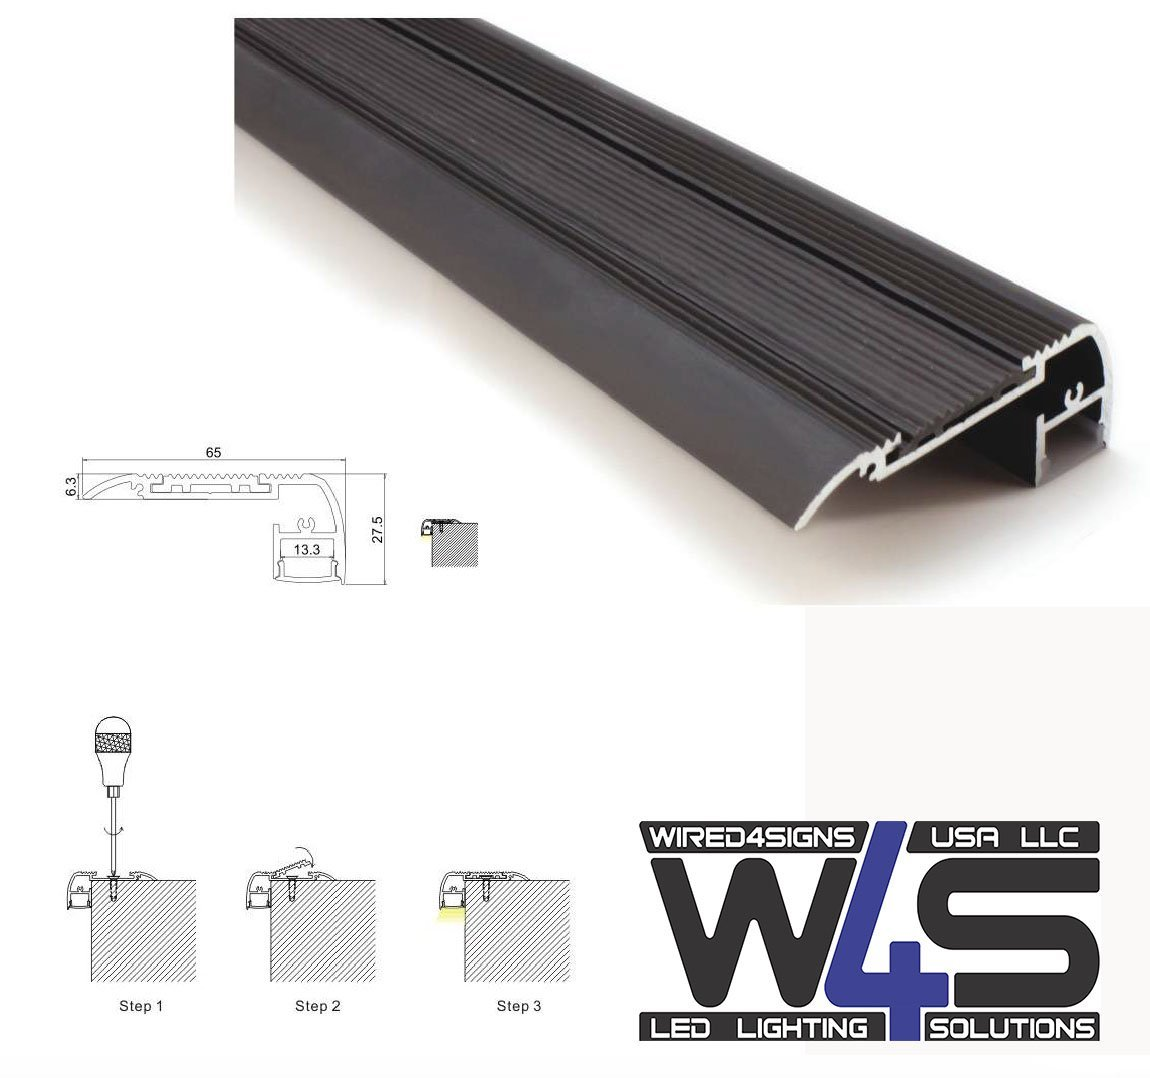 Black LED Stair Lights Channel - Model A49 [Profile Only] by Wired4Signs USA